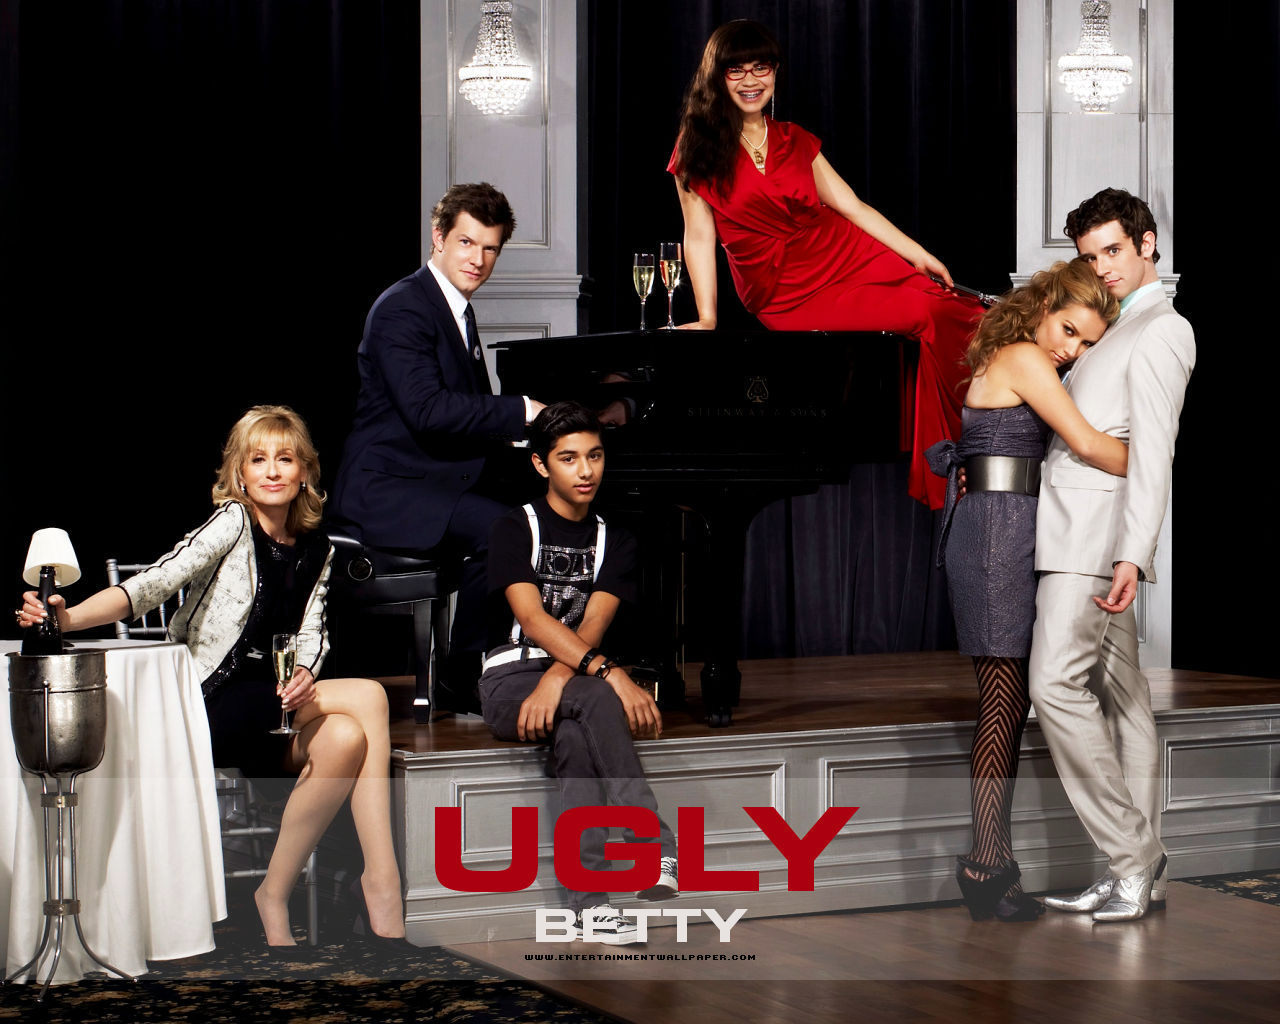 http://images2.fanpop.com/images/photos/2900000/Ugly-Betty-ugly-betty-2966065-1280-1024.jpg